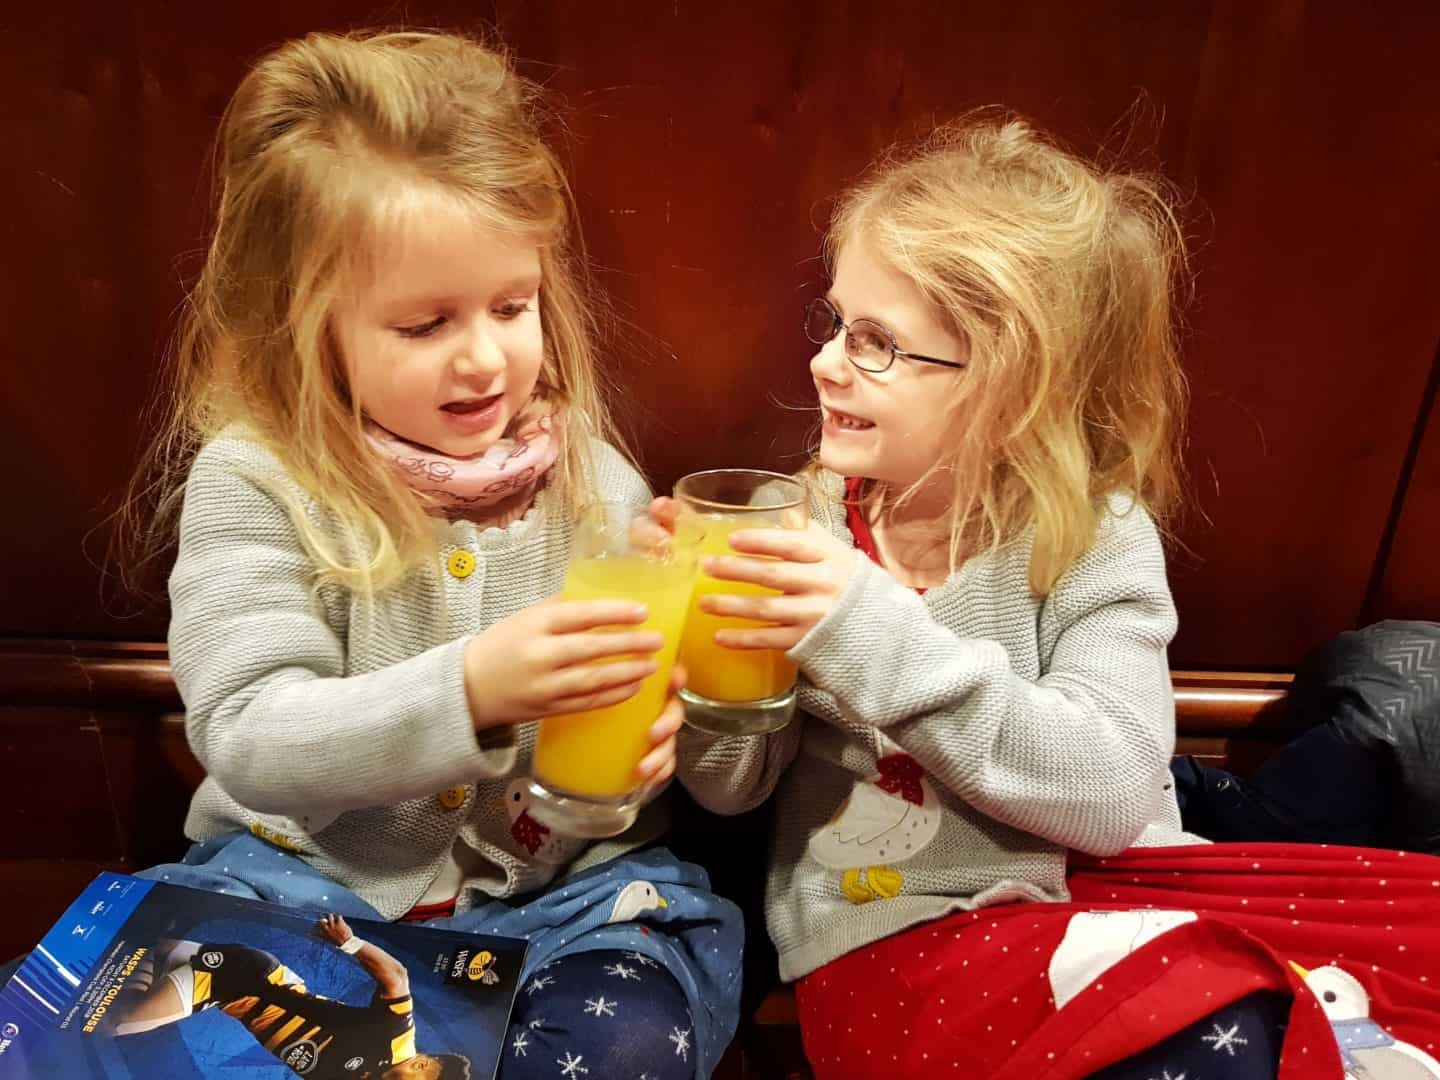 Close friends are overrated two little girls knocking their orange juice glasses together